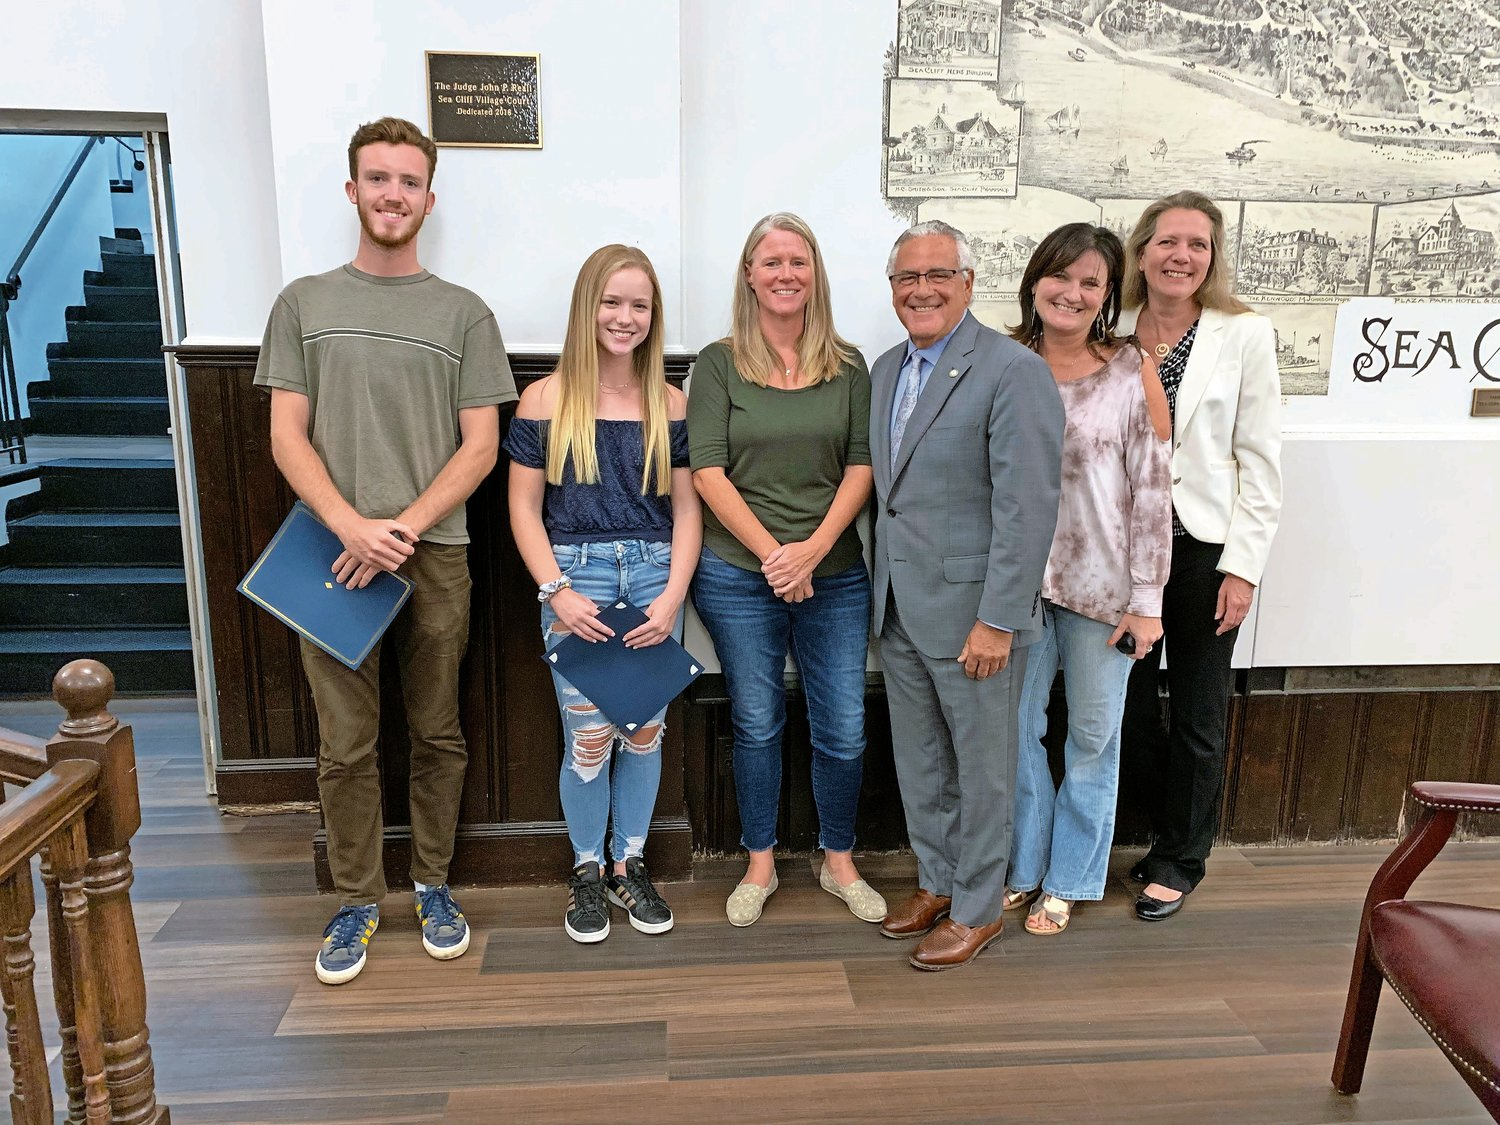 Mayor Edward Lieberman, third from right, awarded certificates to lifeguards Sean Valentine, left, and Cate Salditt, who were joined by Sea Cliff Beach managers Elaine Neice and Joni Sturge and Village Trustee Henriette Rohl.